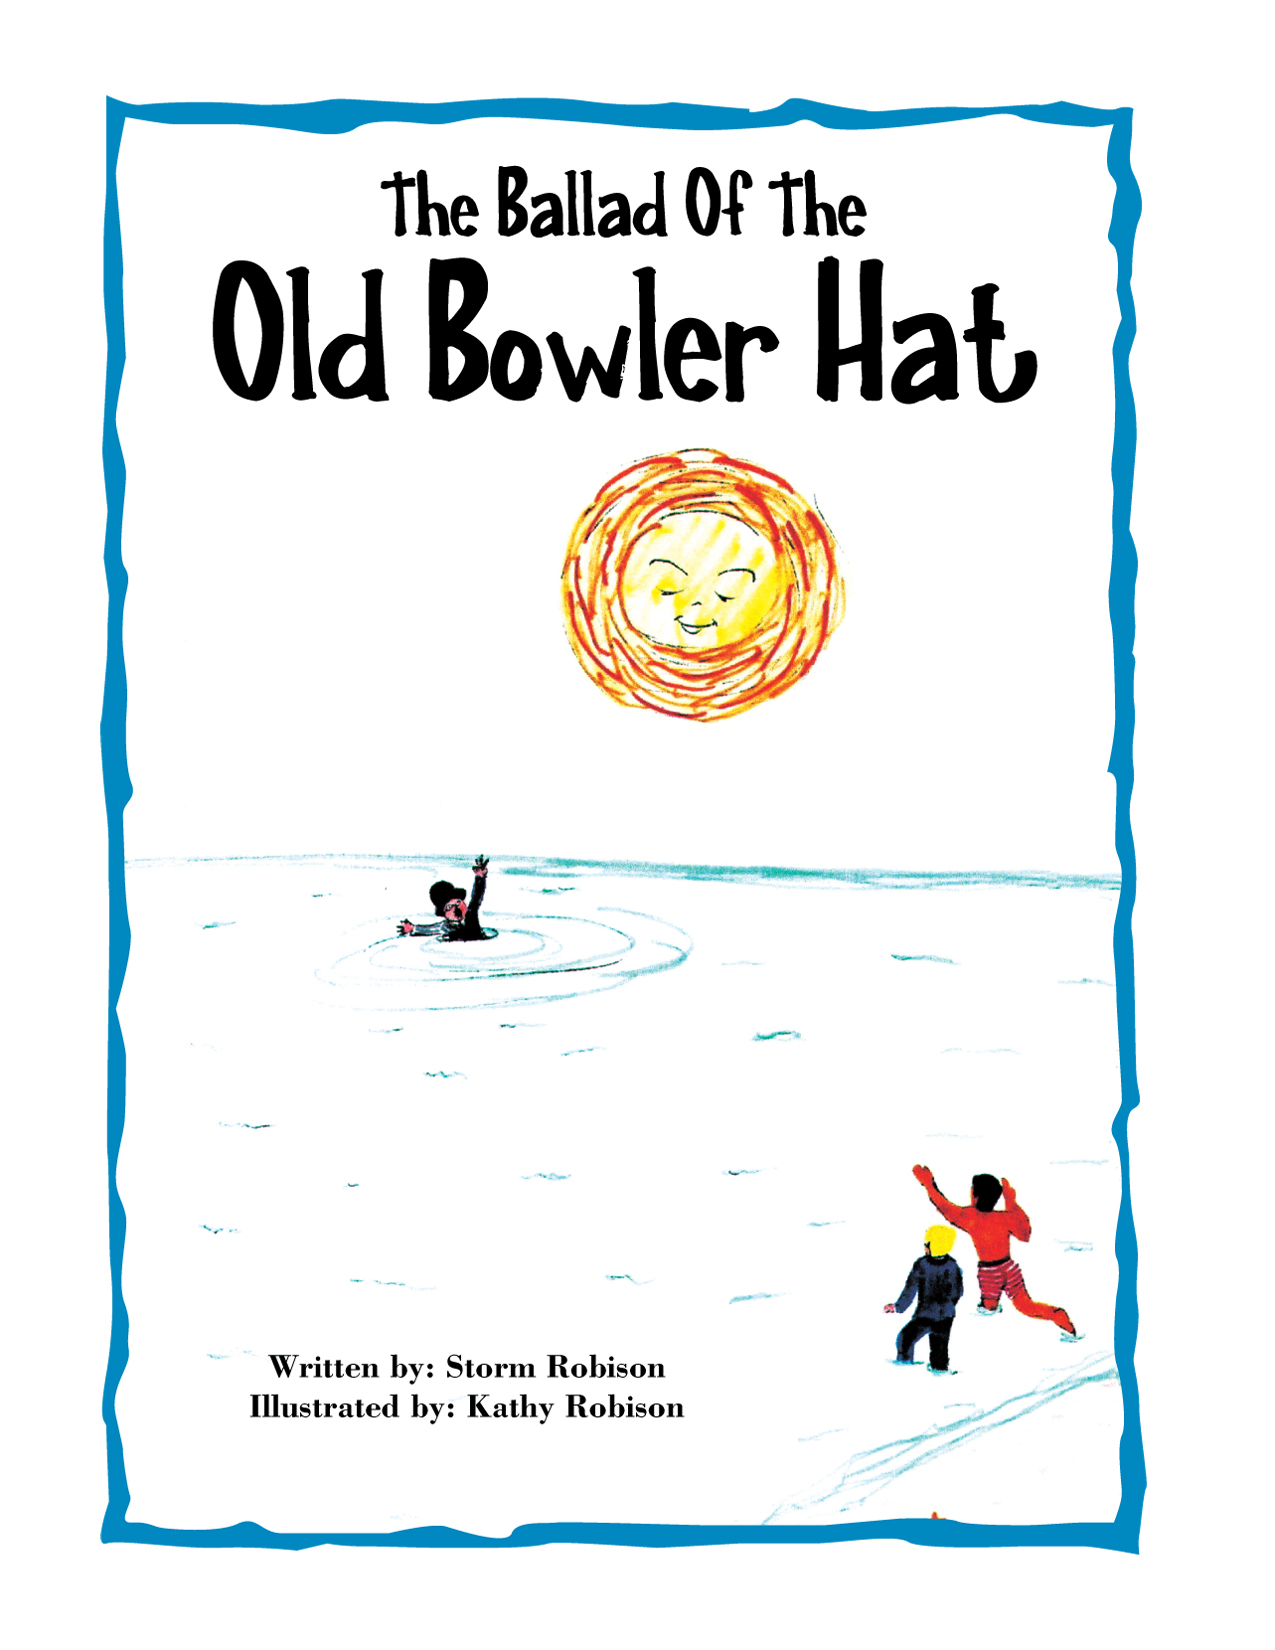 The Ballad Of The Old Bowler Hat